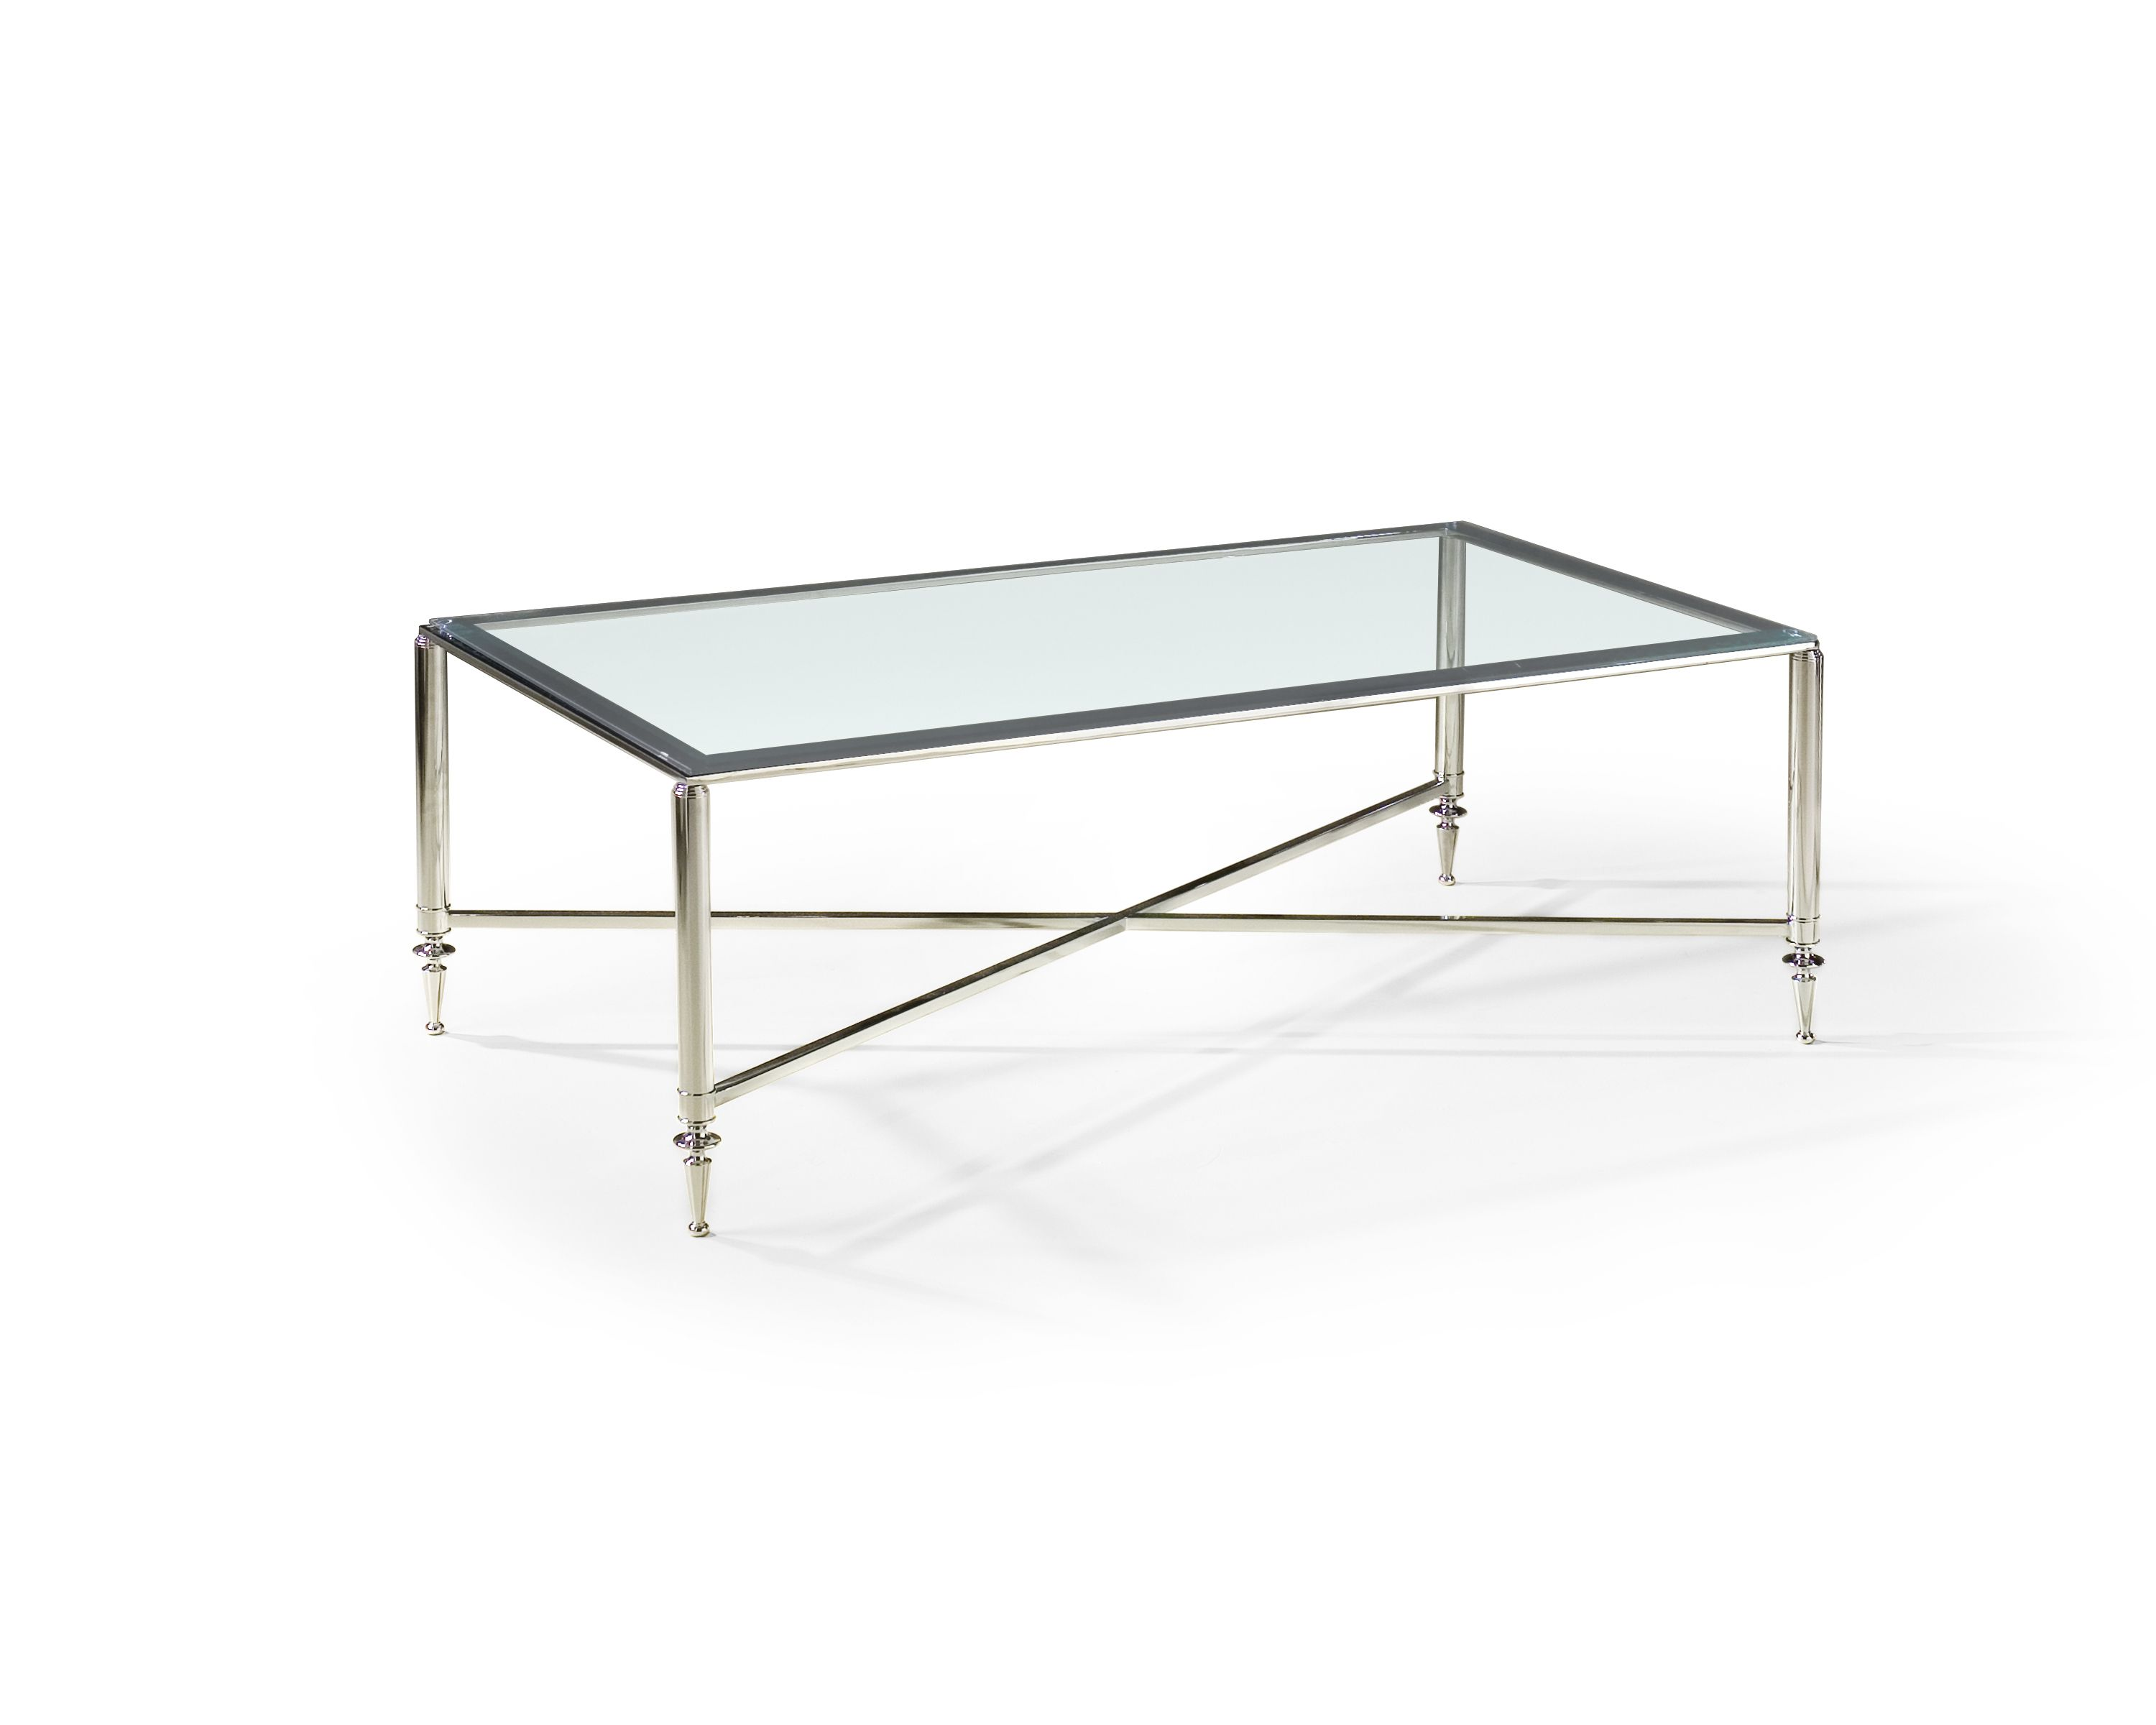 Uptown Coffee Table By Rick Berry For Dia Coffee Table Transitional Coffee Tables Table [ 2400 x 3000 Pixel ]